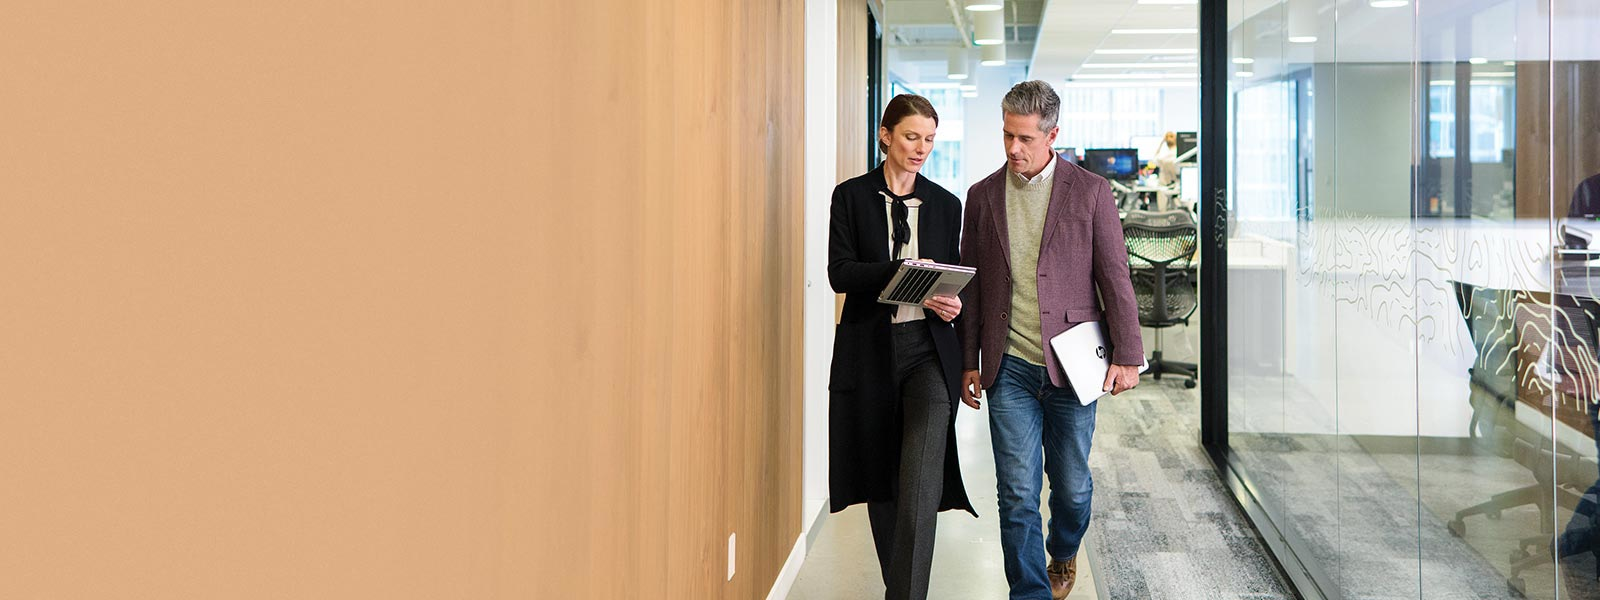 A man and woman walk in an office setting